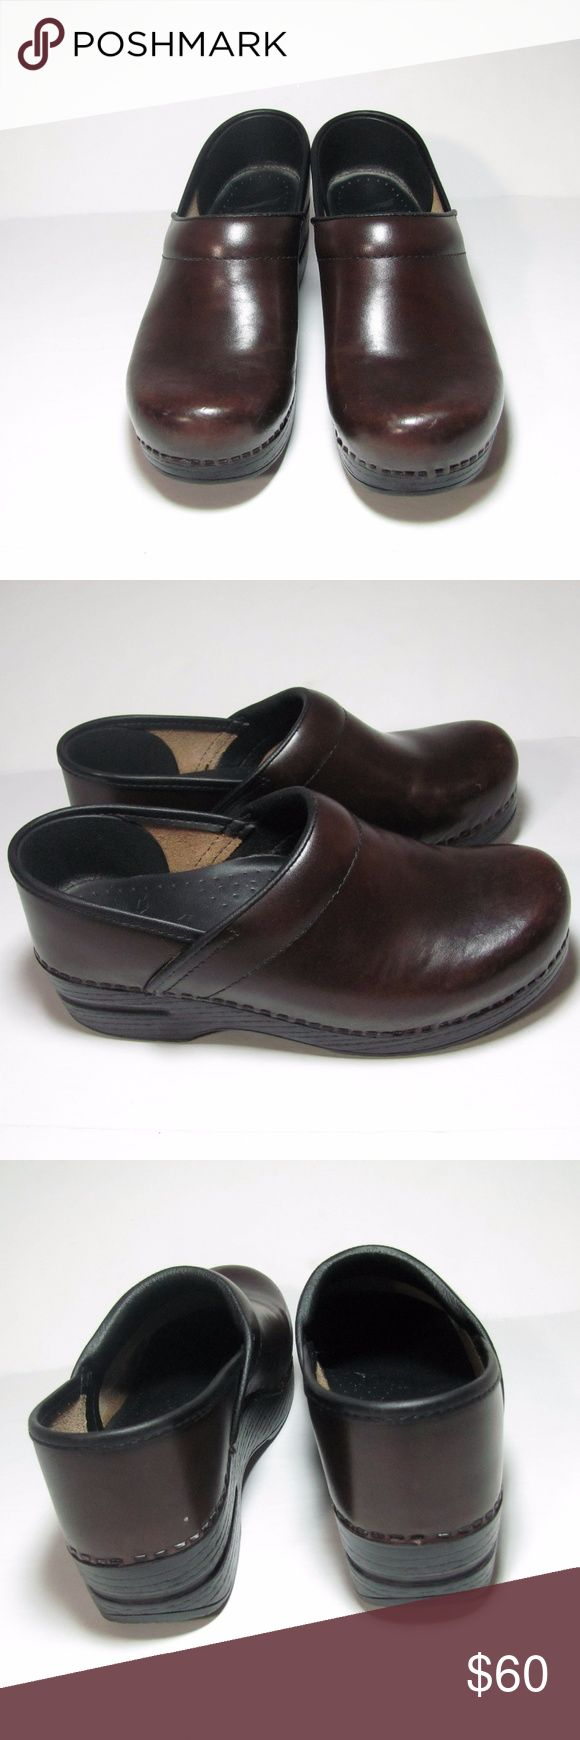 SALE Dansko size 7 Clogs Leather Brown Closed Back Dansko Clogs. Closed back. Brown Size 7. These shoes are in excellent condition. Dansko Shoes Mules & Clogs